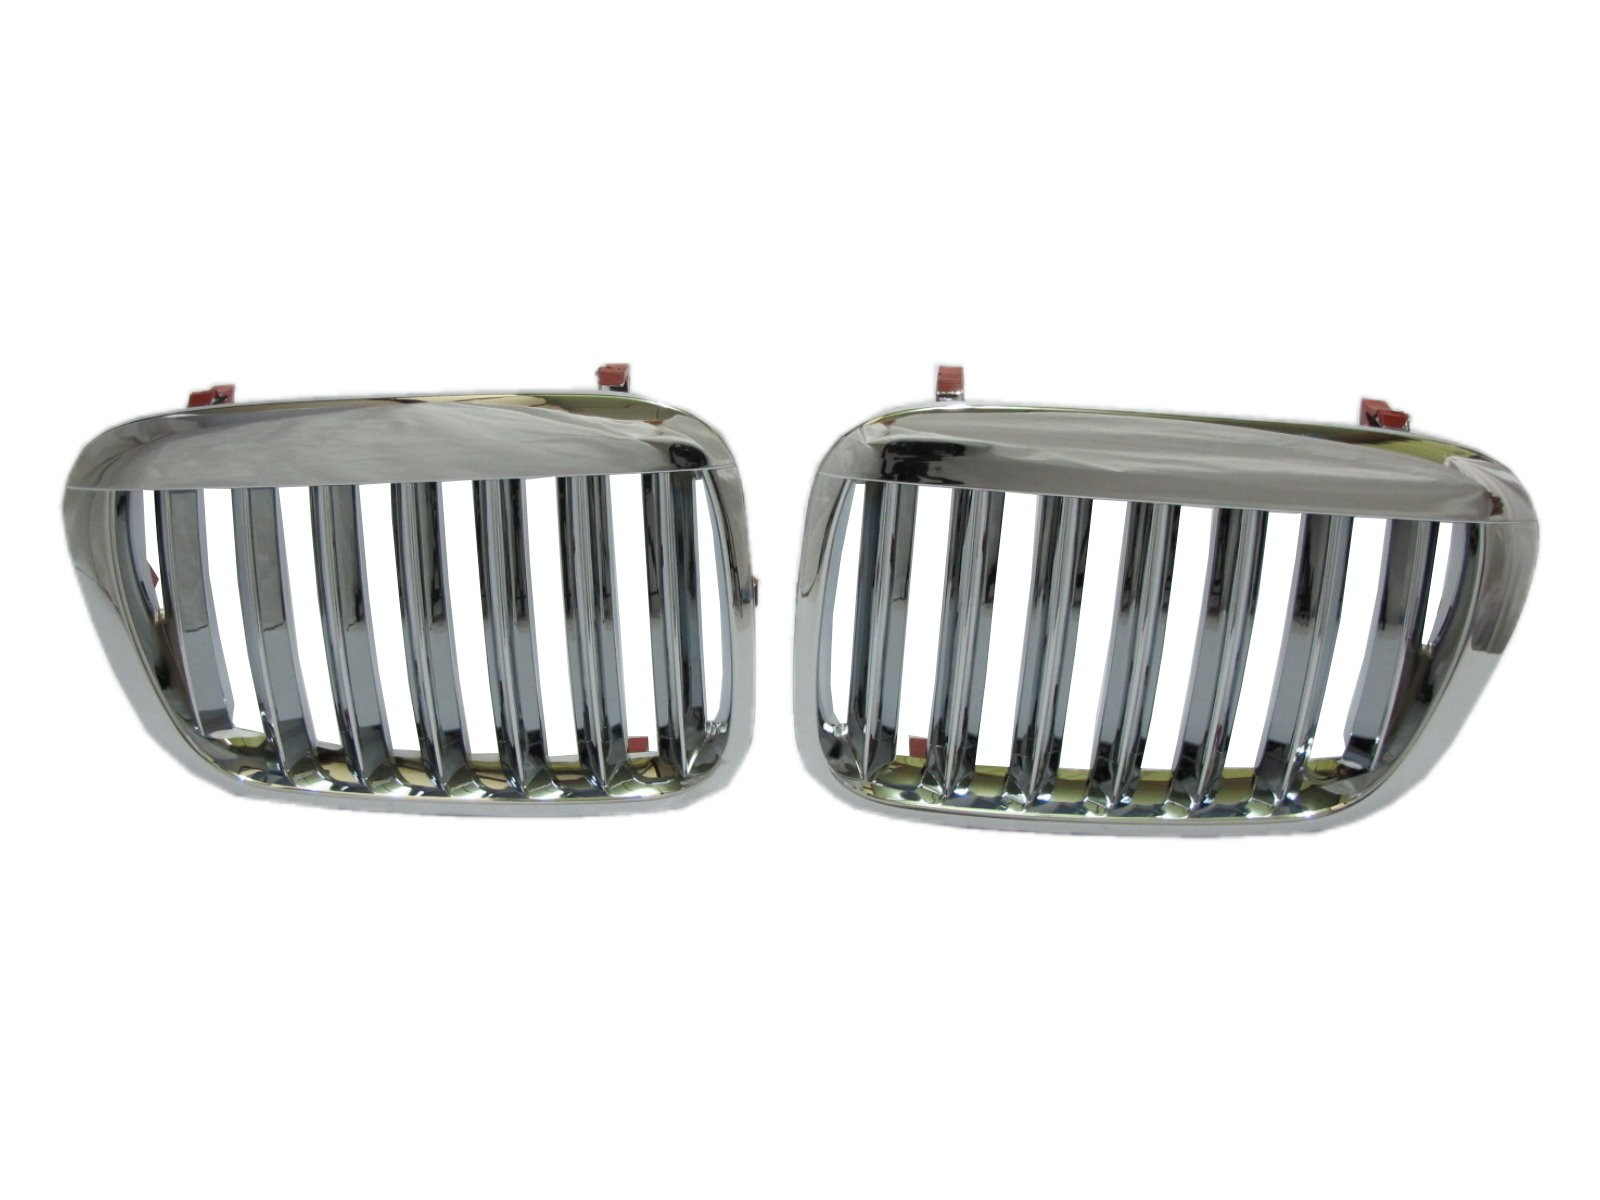 CrazyTheGod 3-Series E46 COMPACT 2000-2005 Hatchback 3D X5LOOK GRILLE/GRILL Chrome for BMW